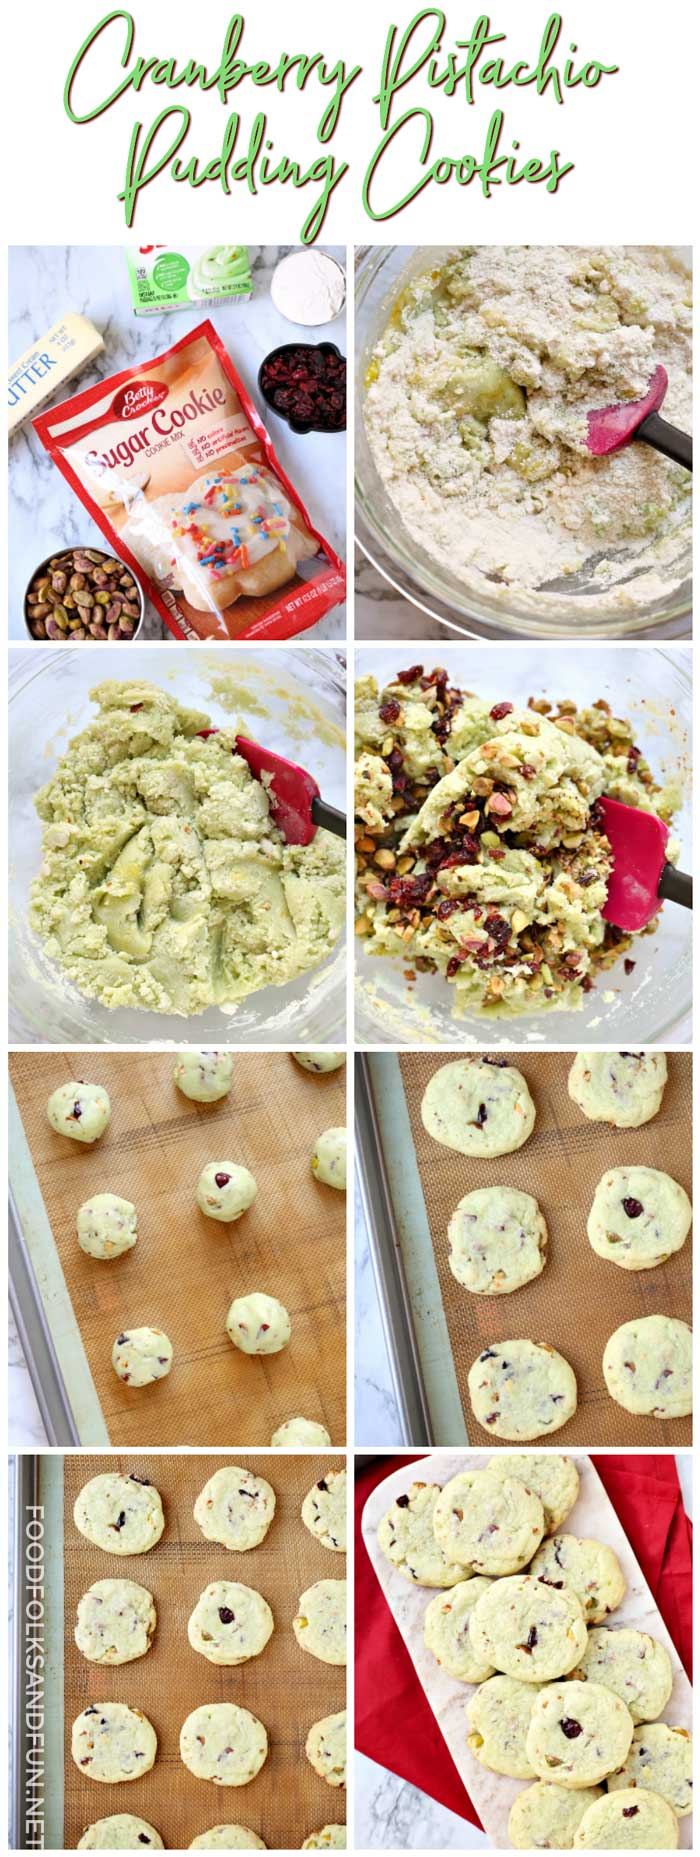 How to Make Easy Cranberry Pistachio Pudding Cookies